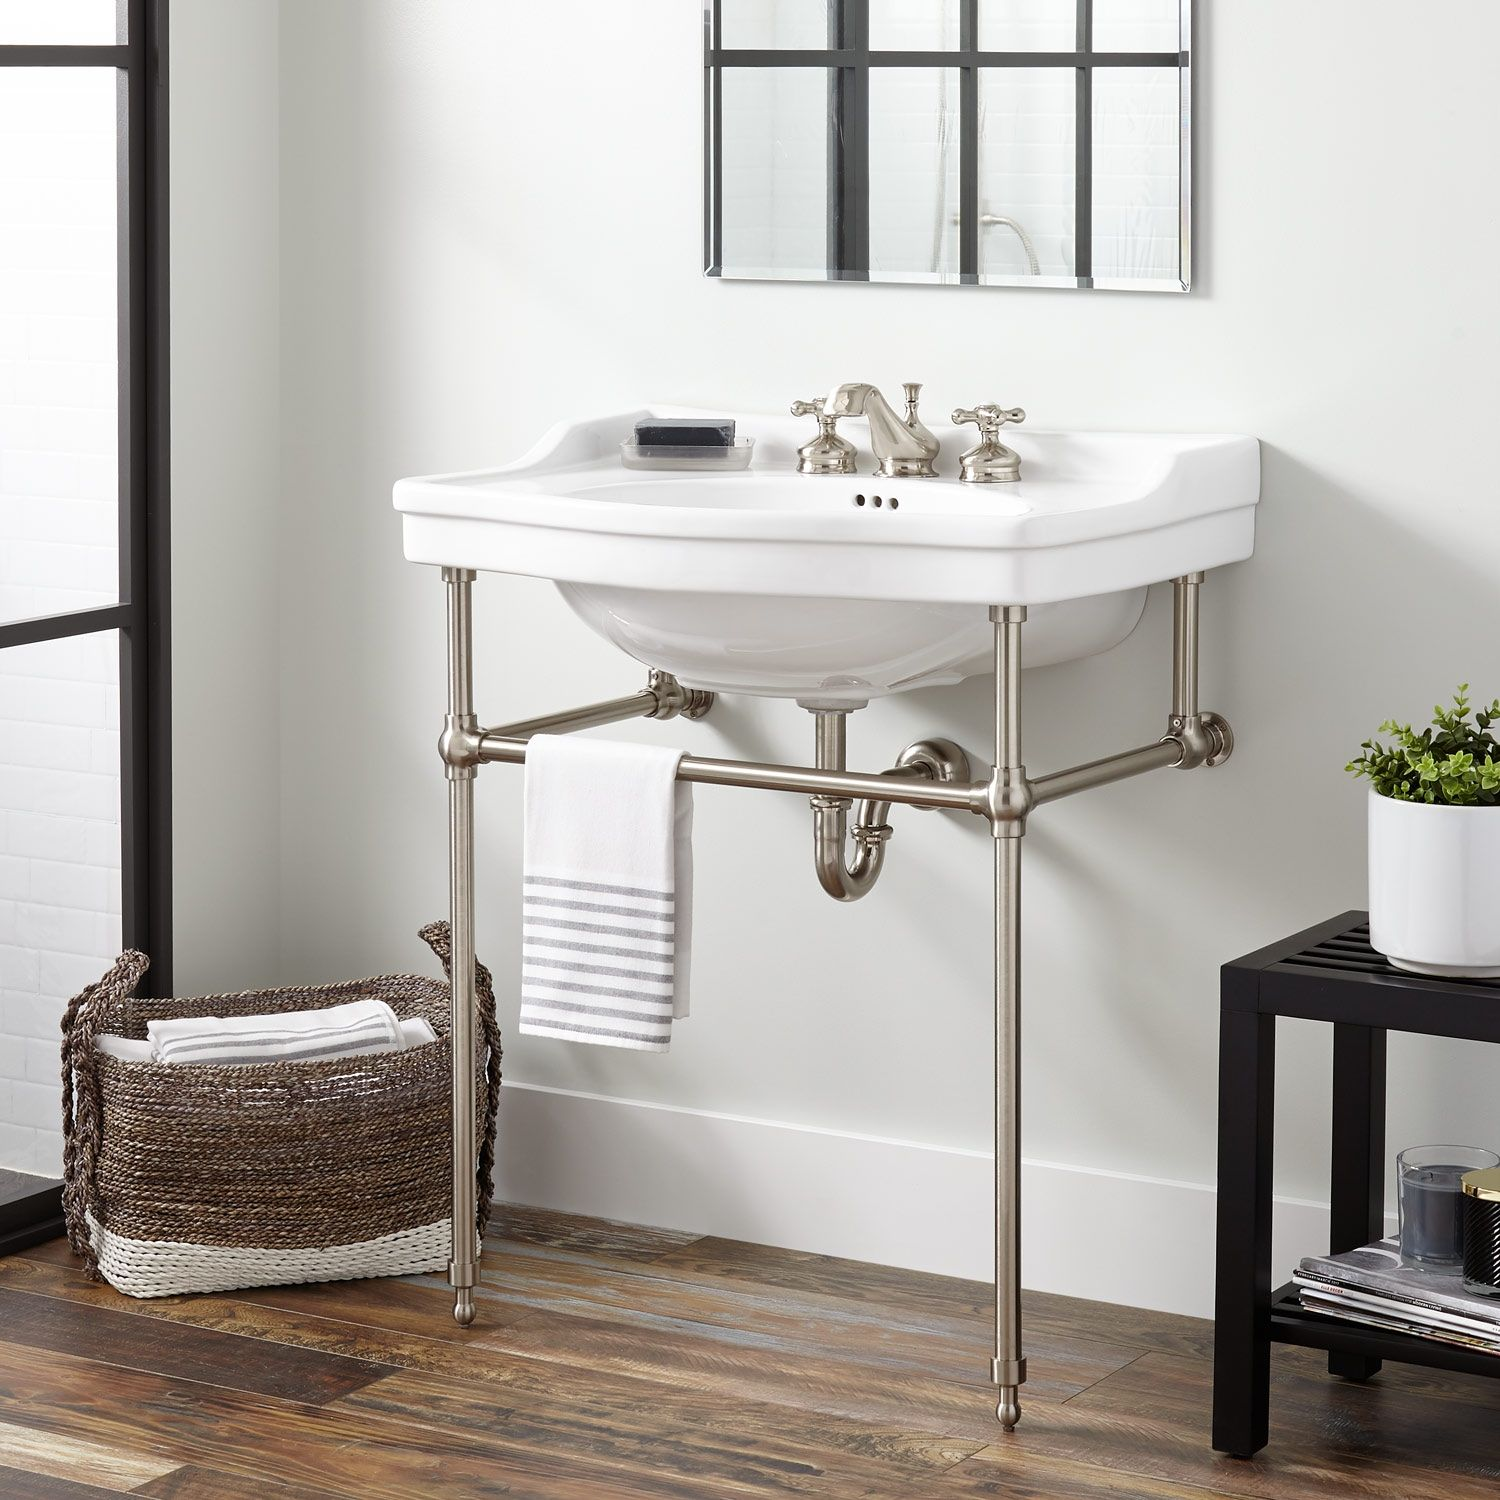 Contemporary Embellishments Enhance The Cierra Console Sink With Brass Stand A Great Fit For Small Bathrooms This In 2020 Bathroom Console Console Sink Console Sinks